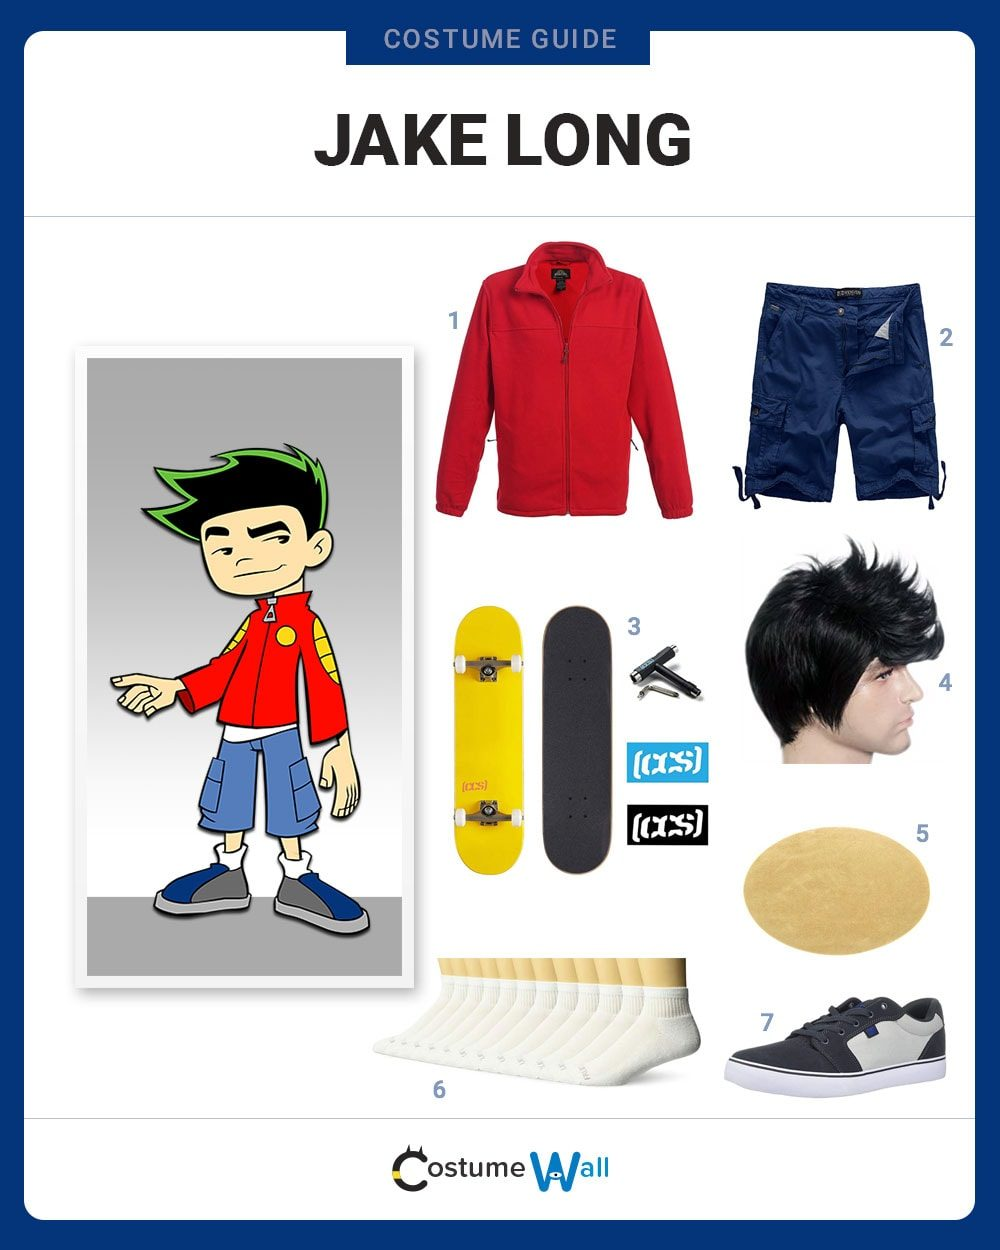 Jake Long Costume Guide